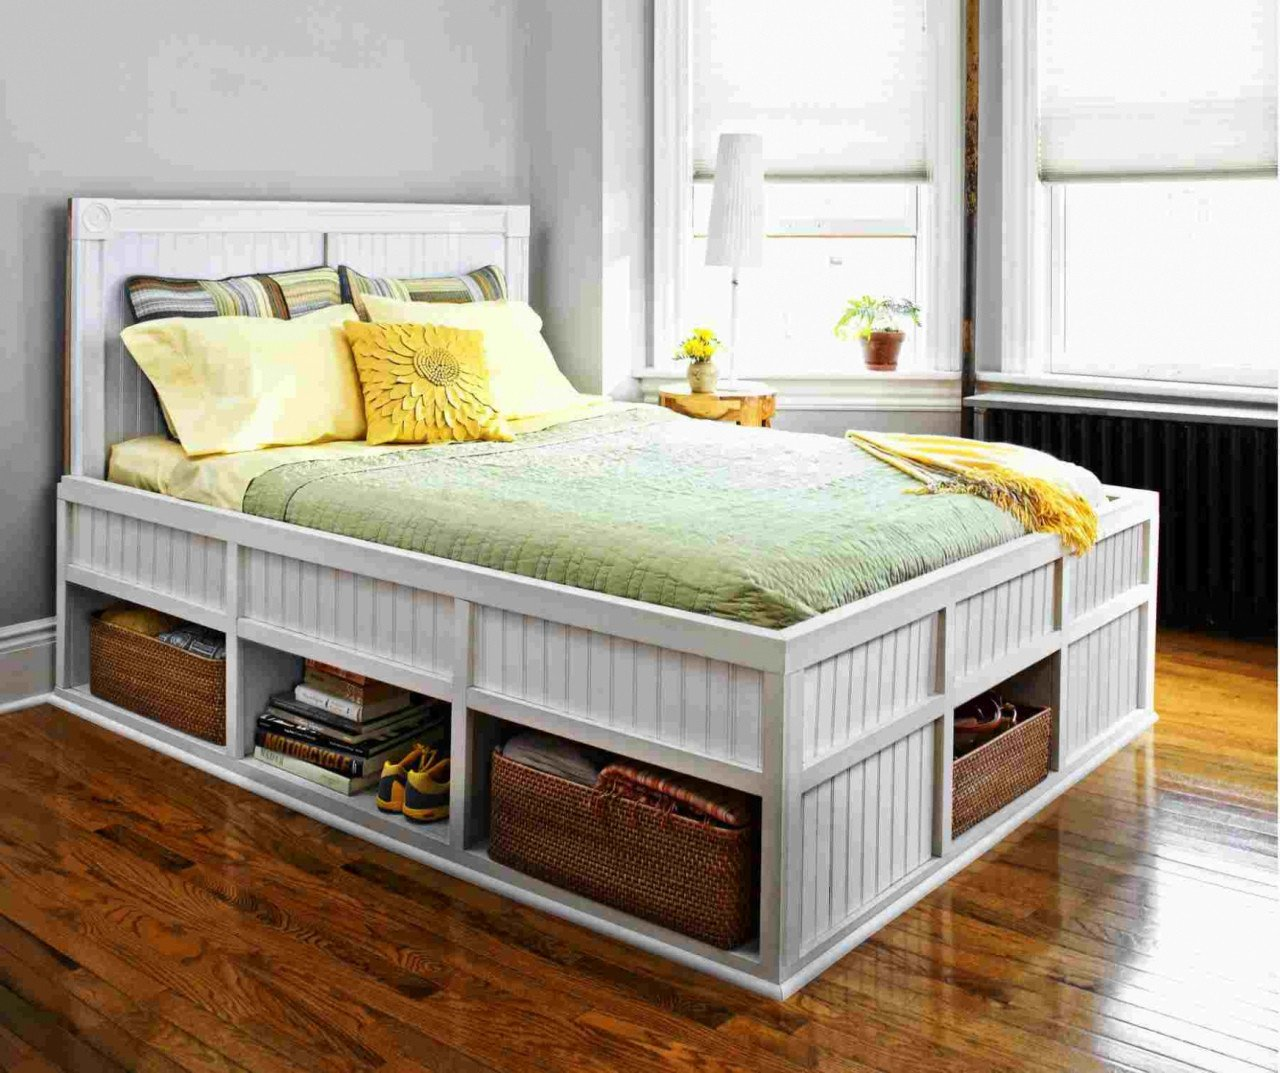 Bedroom Wall Units with Drawers Elegant Queen Bed Frame with Drawers — Procura Home Blog